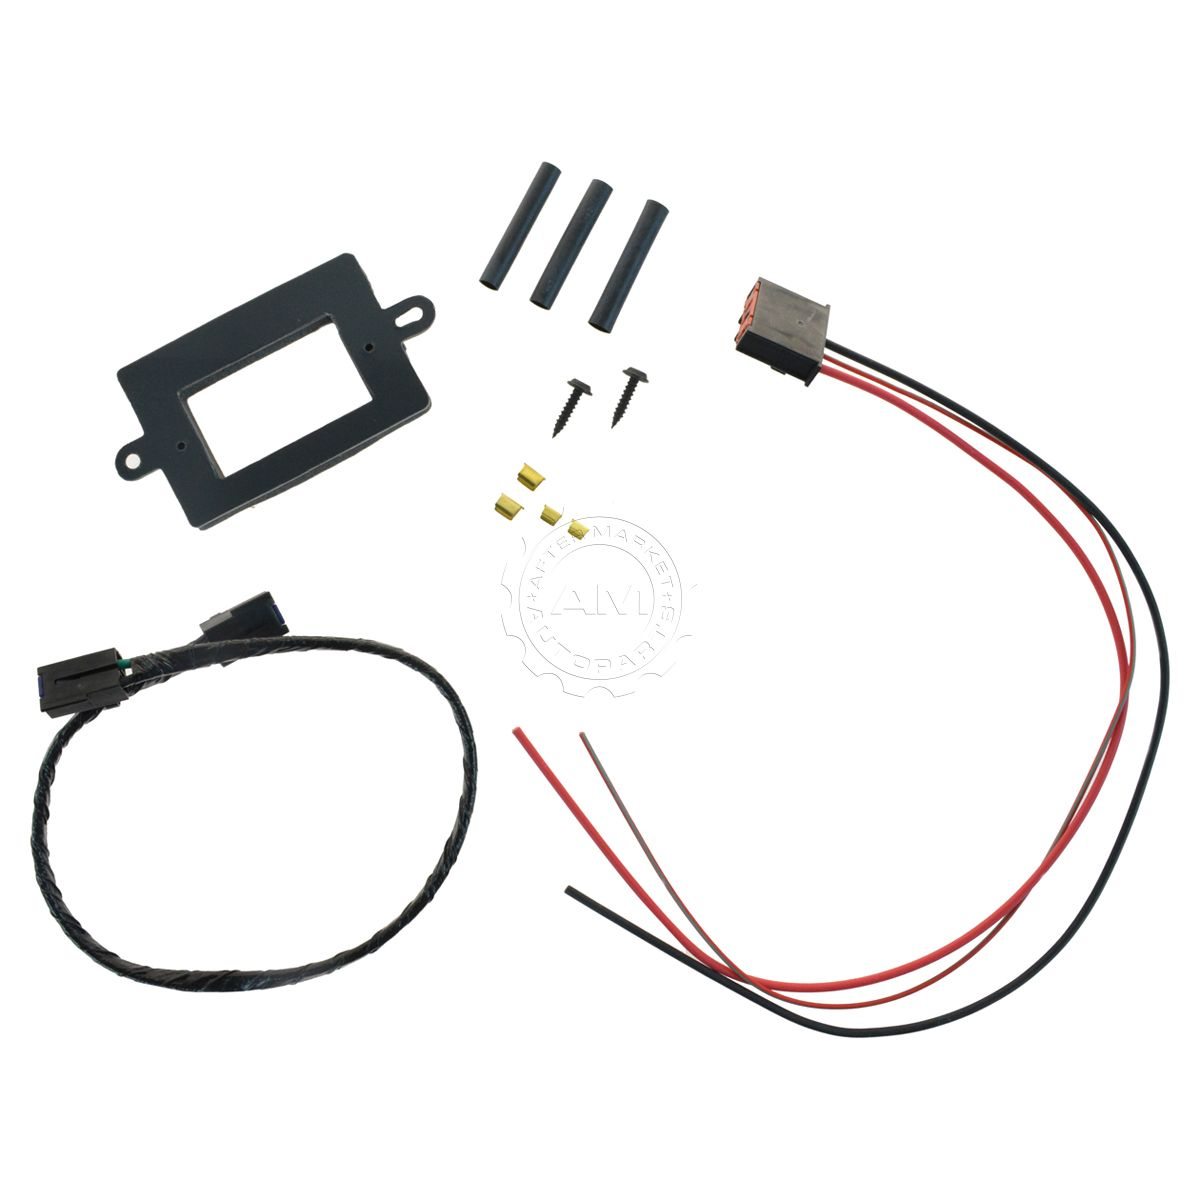 Resistor Wiring Harness 2004 Jeep Cherokee Diagrams Atc Blower Motor Upgrade Kit For 99 04 Grand 2000 Alternator Diagram